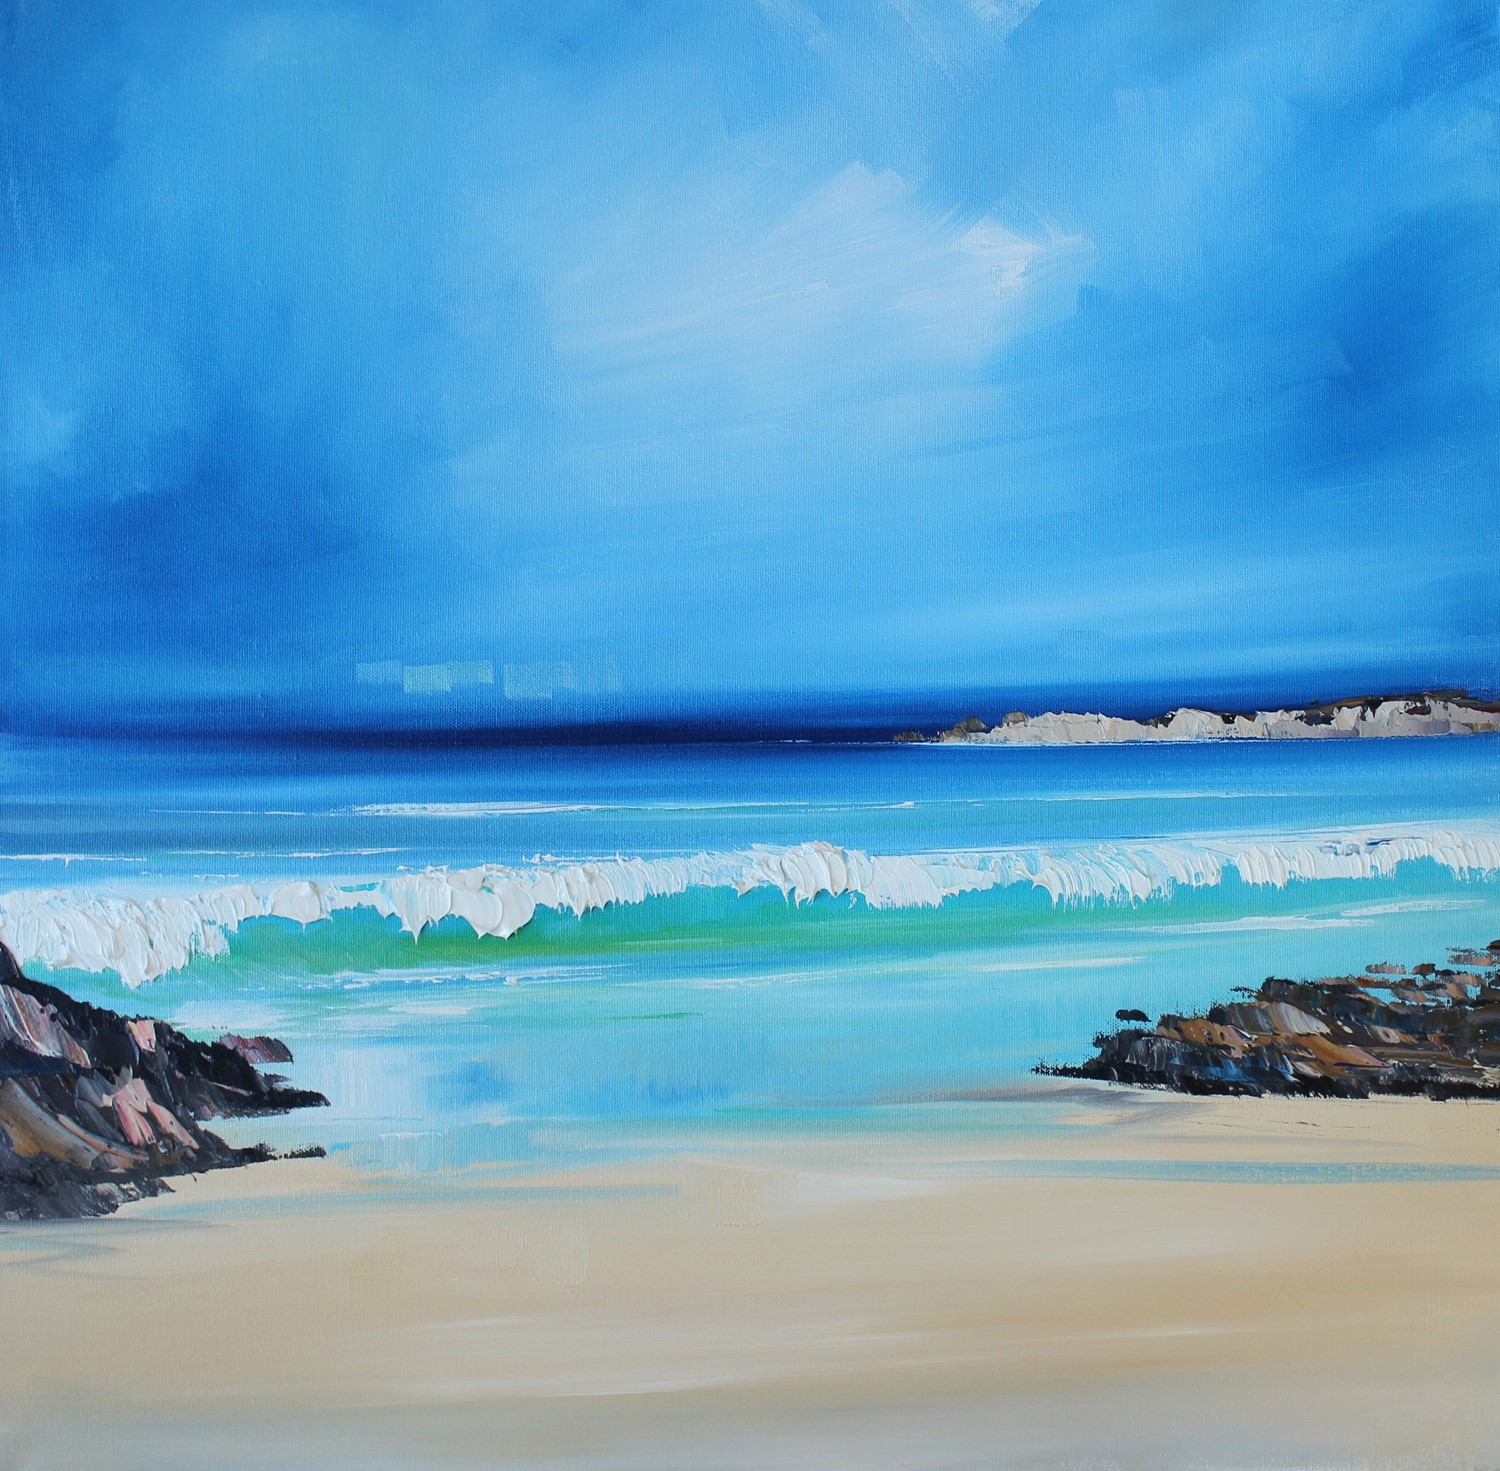 'Where the Sea meets the Shore' by artist Rosanne Barr